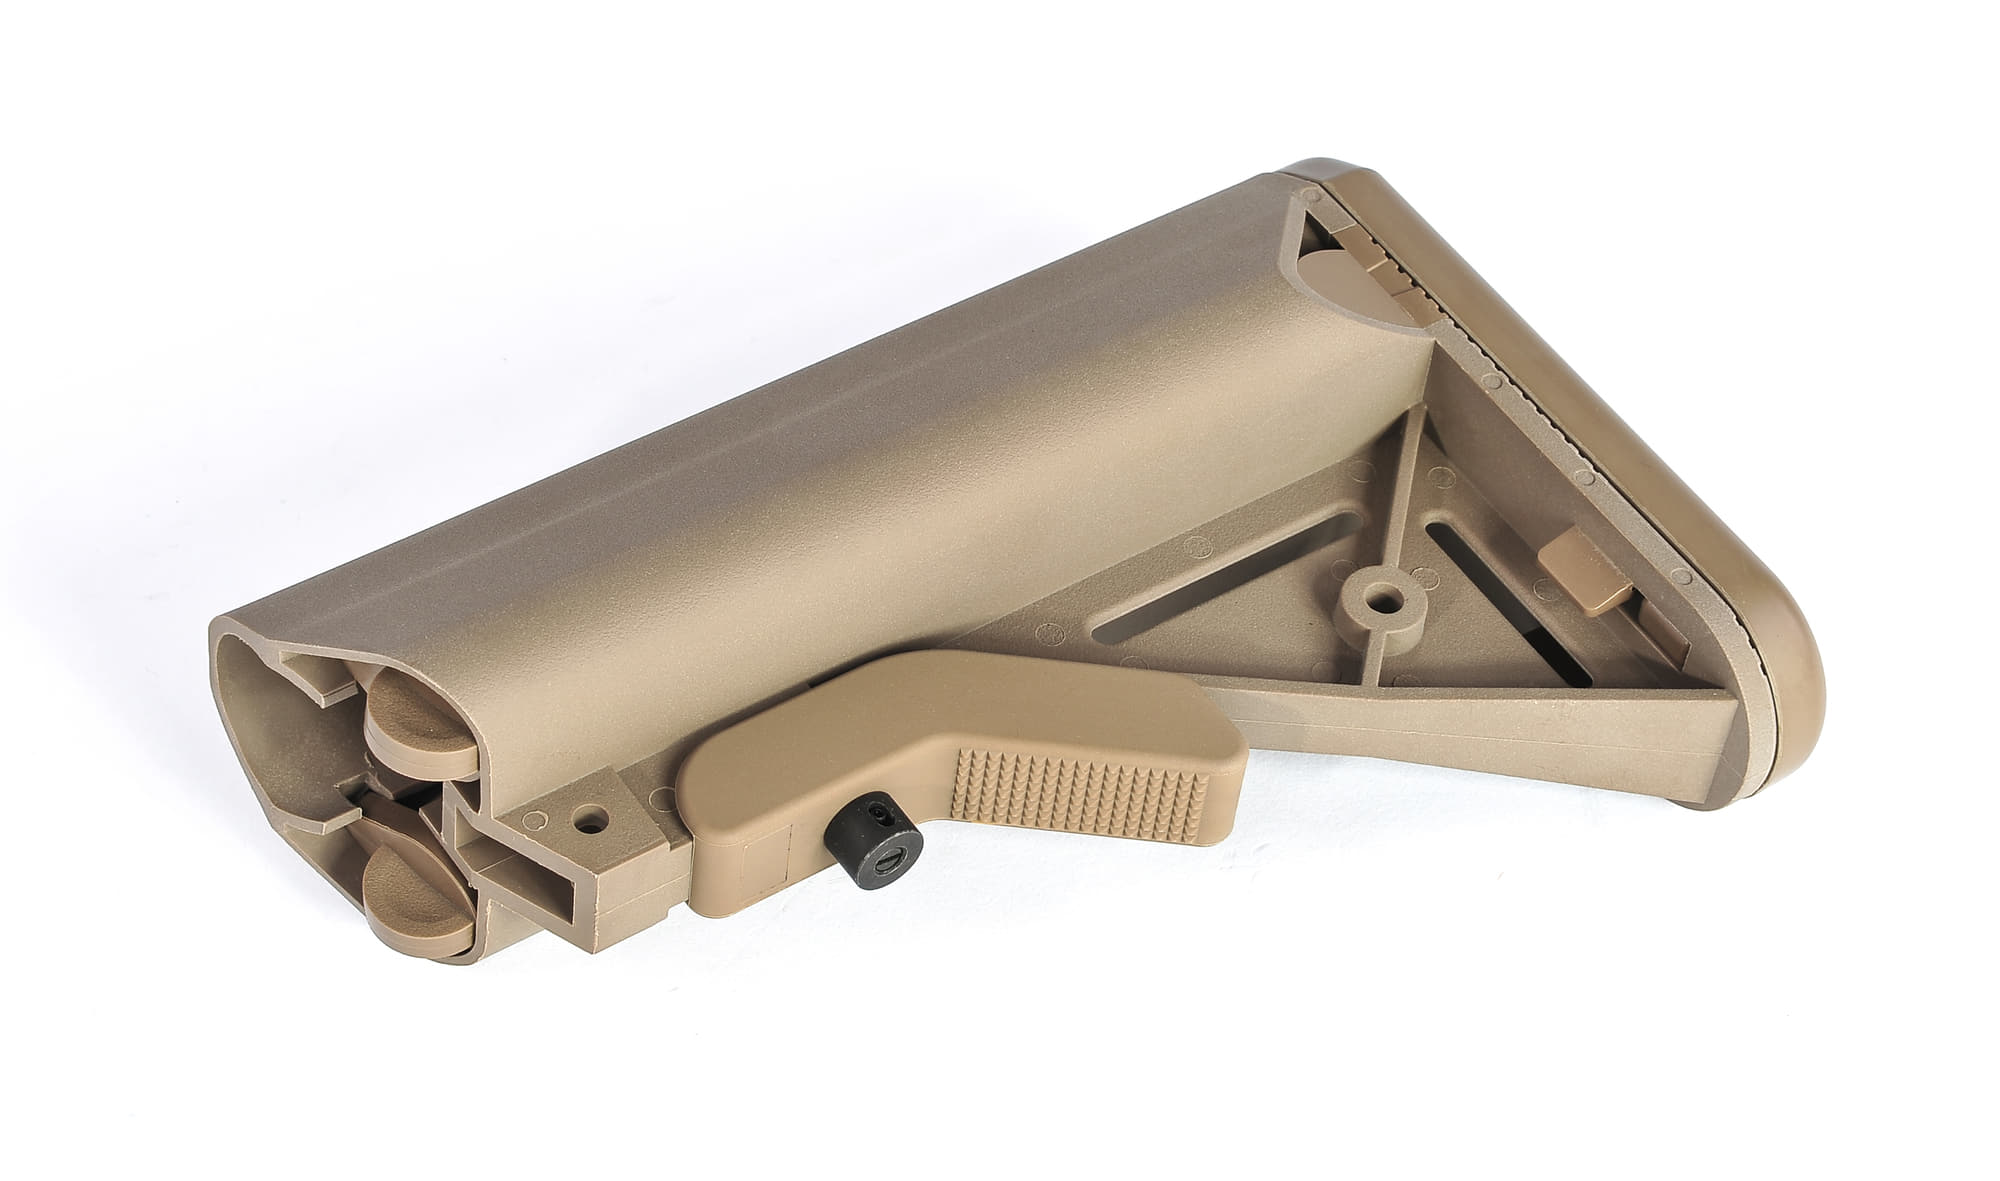 PS02336-Crosse crane Sopmod tan - VFC - PS02336.